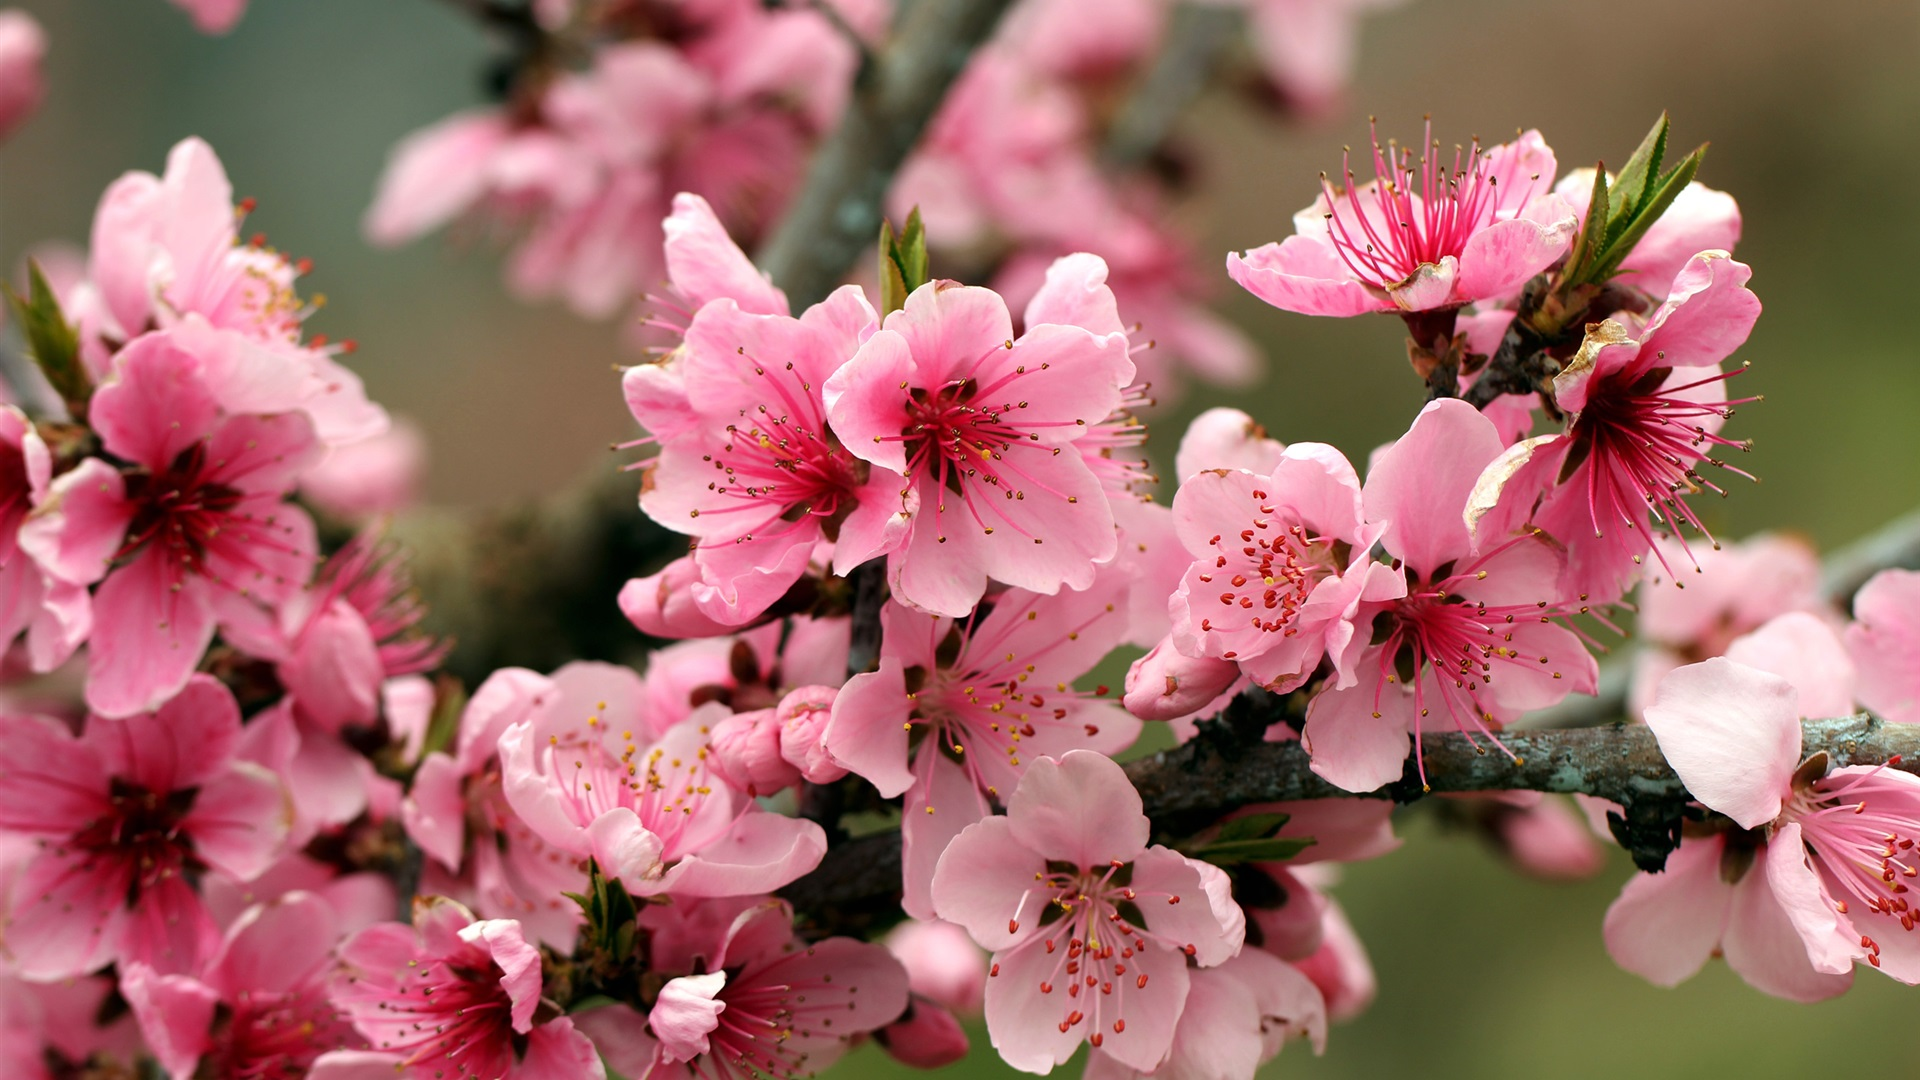 Spring apple tree pink flowers blossoms Wallpaper